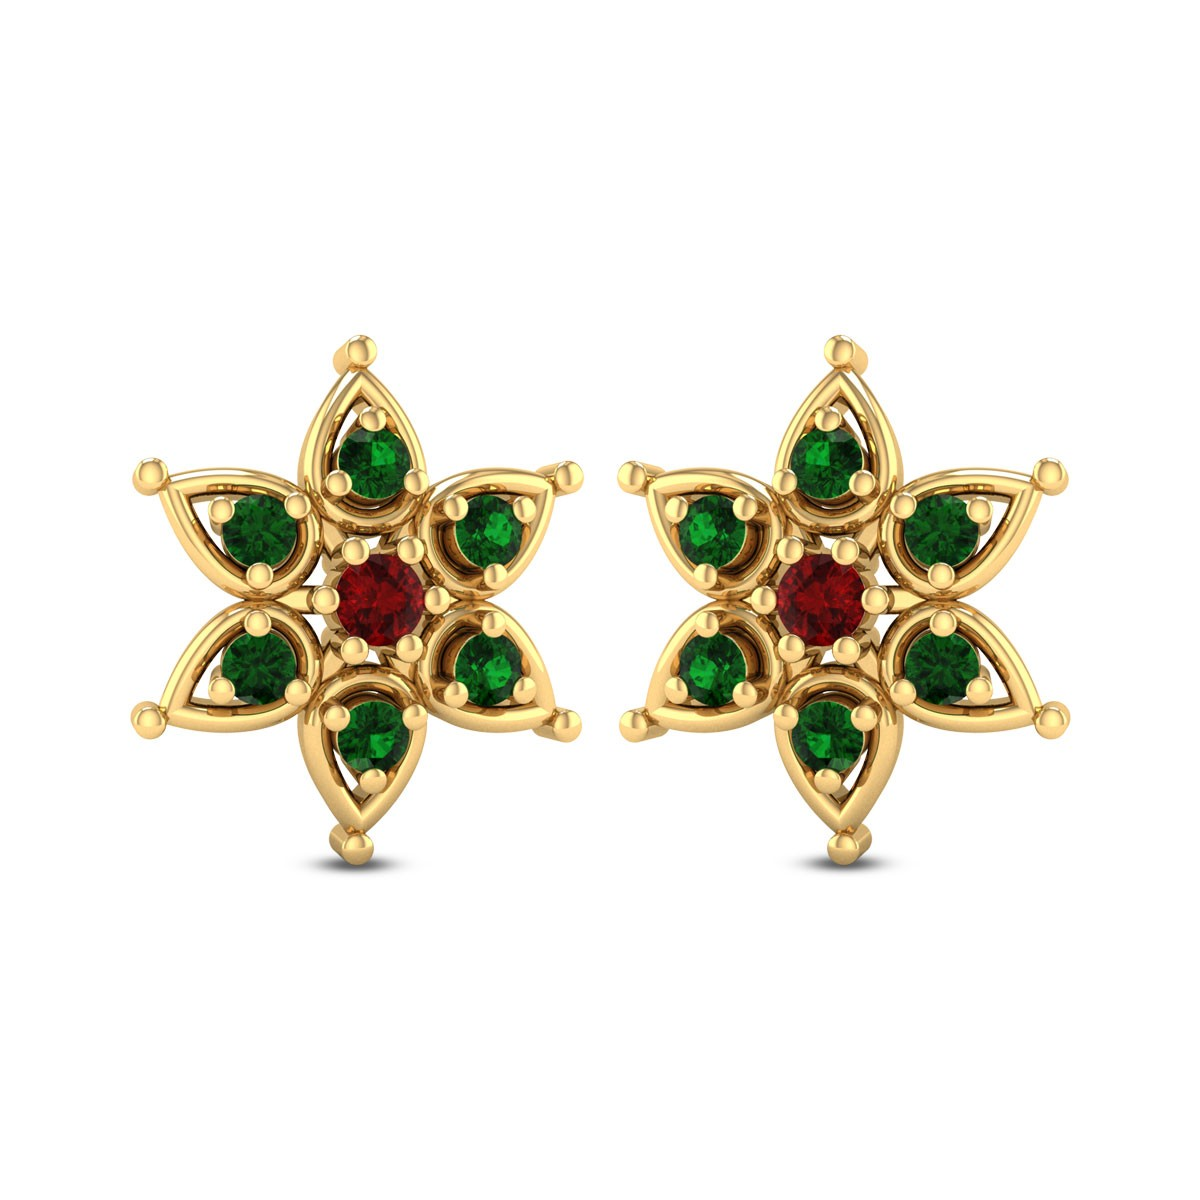 Sophornitella Royal Stud Earrings